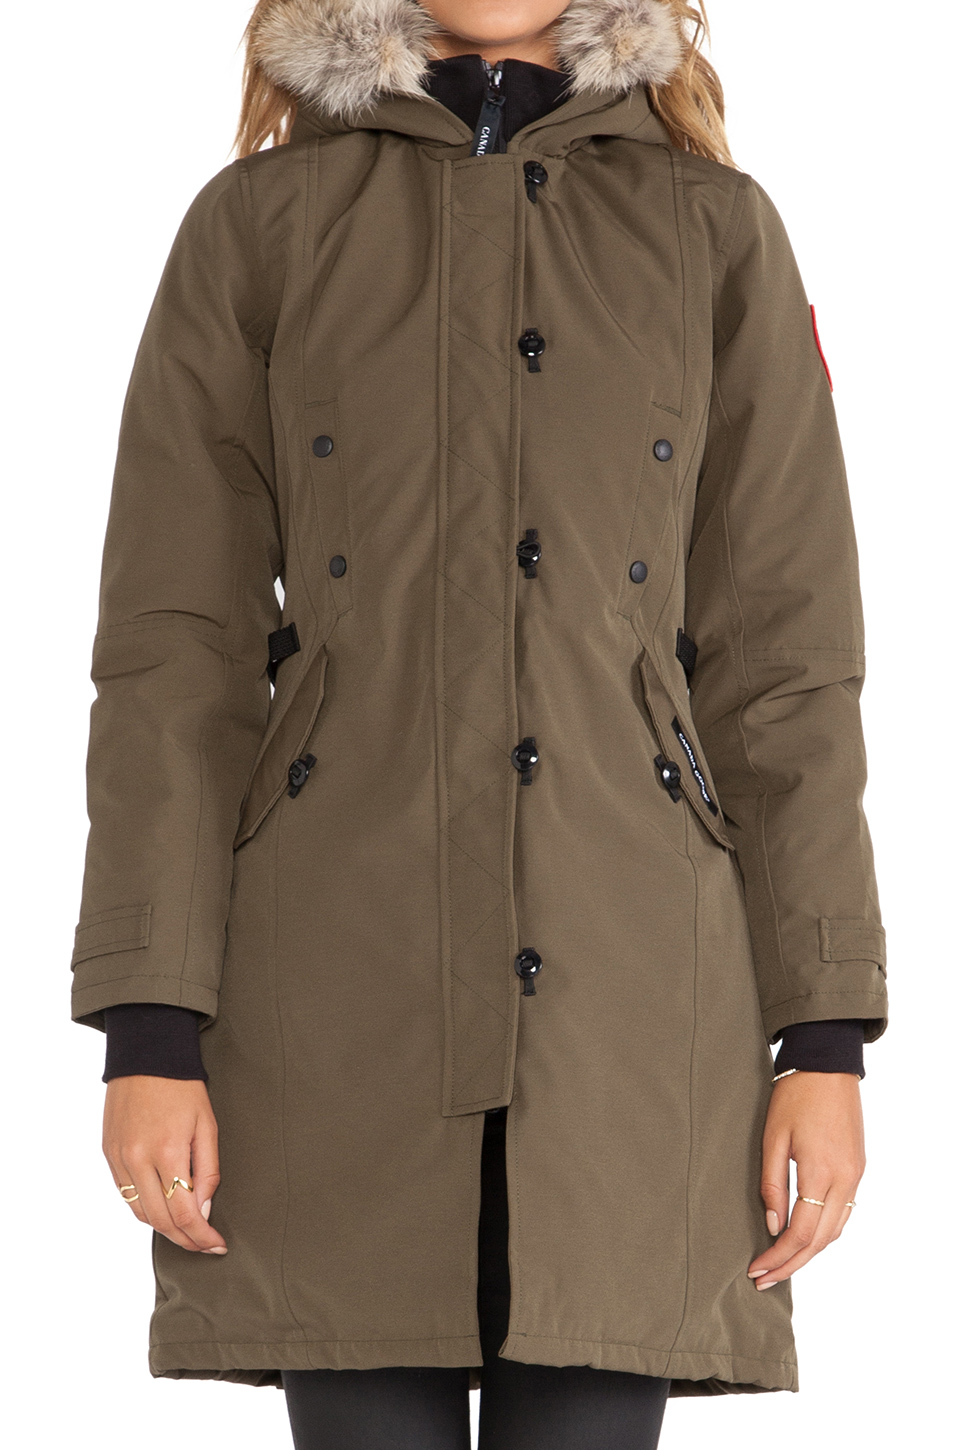 Canada Goose toronto replica discounts - Canada goose Kensington Parka With Coyote Fur Trim in Green ...